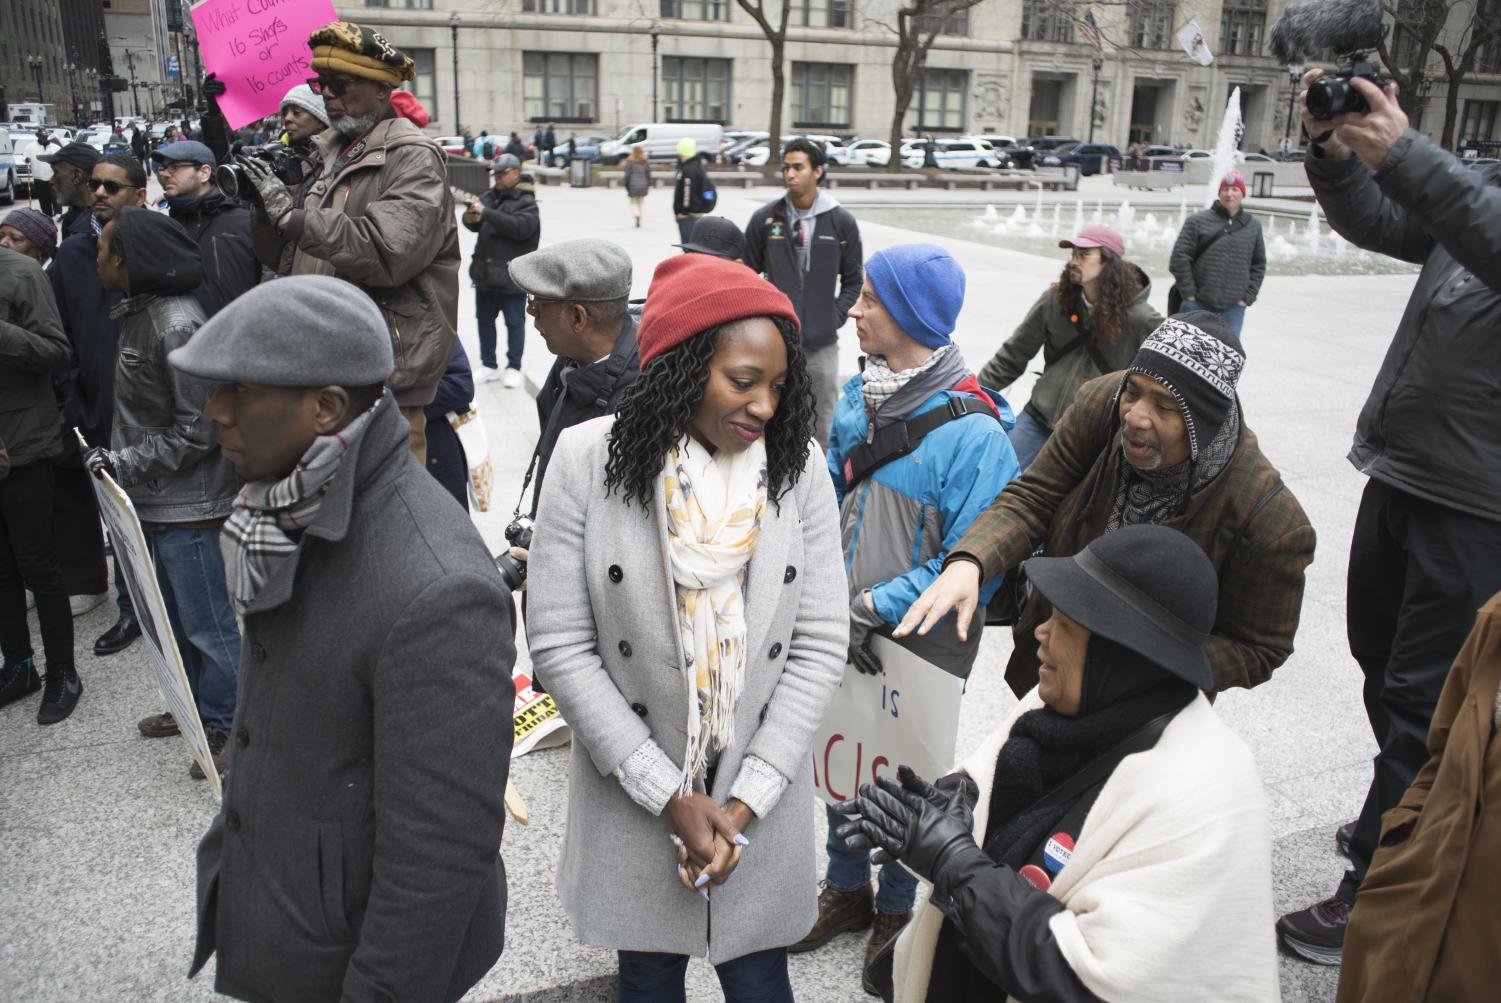 Community+organizer+Amara+Enyia+speaks+with+other+counter-protesters+April+1.